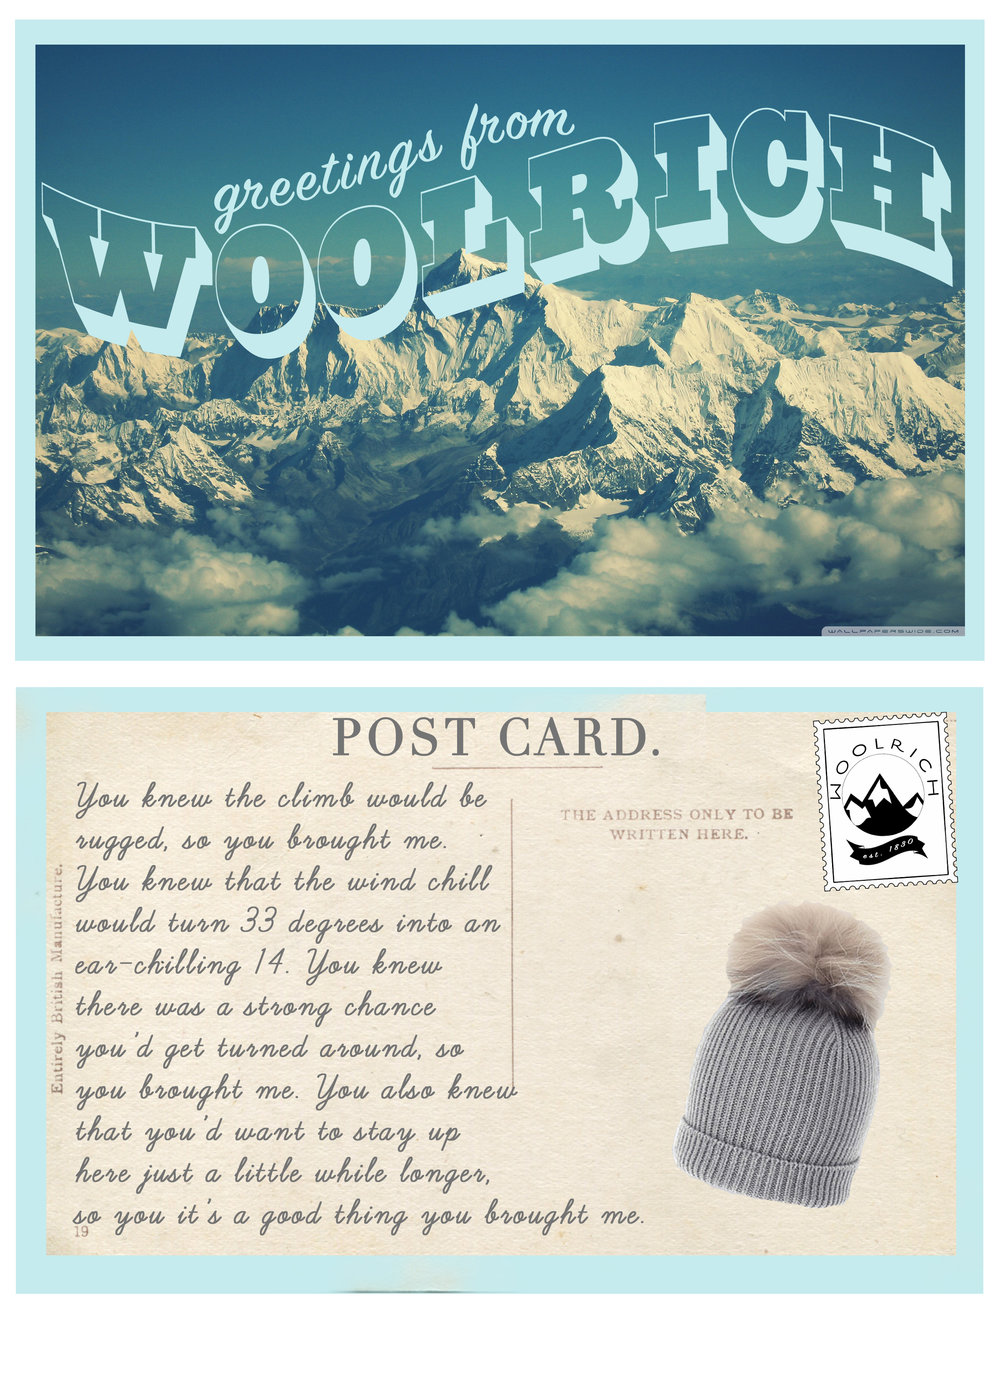 Greetings From Woolrich Writer